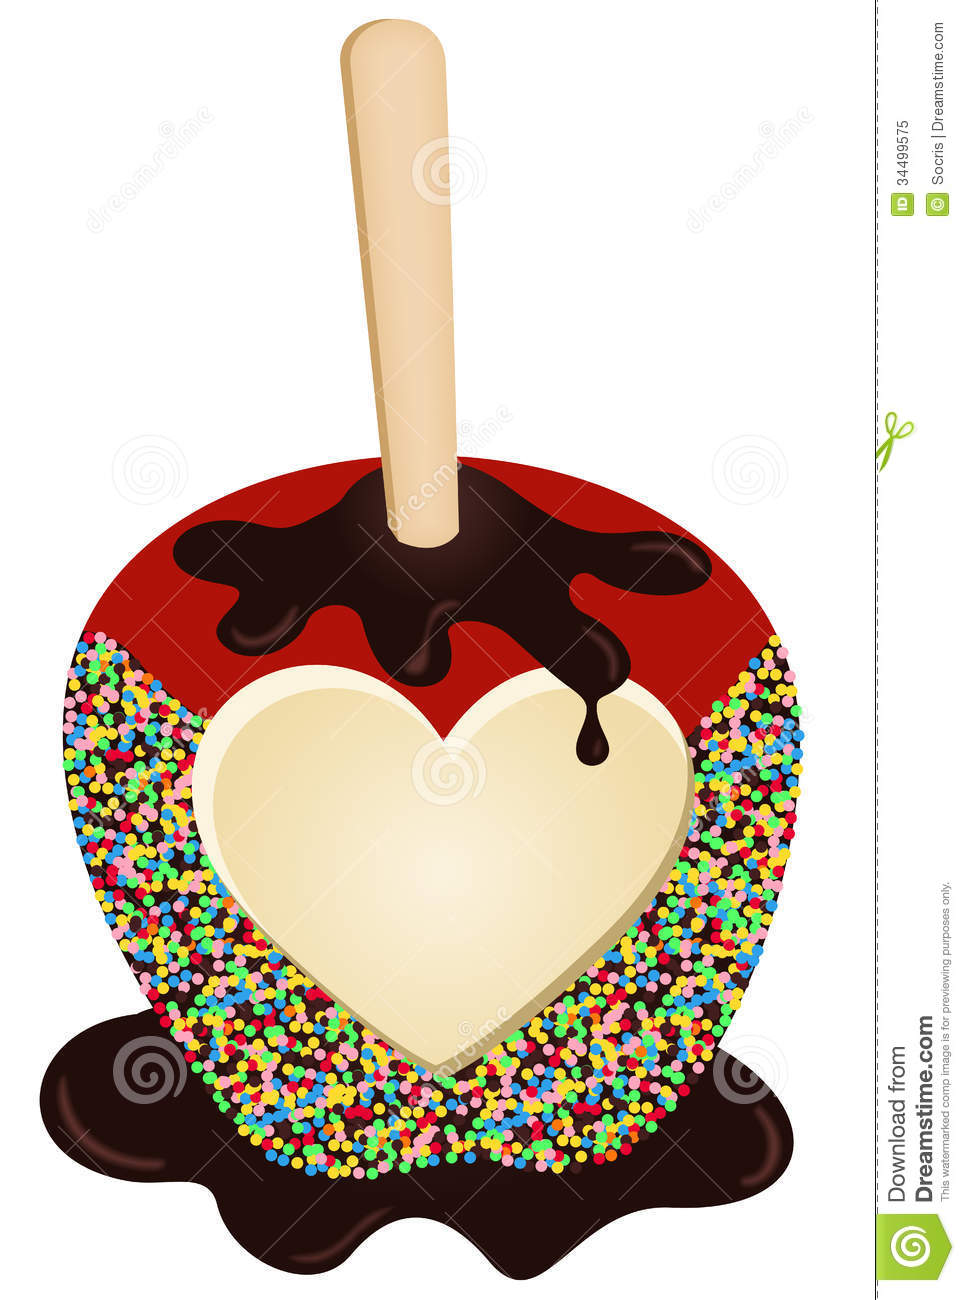 Chocolate Apple Love Royalty Free Stock Photo.